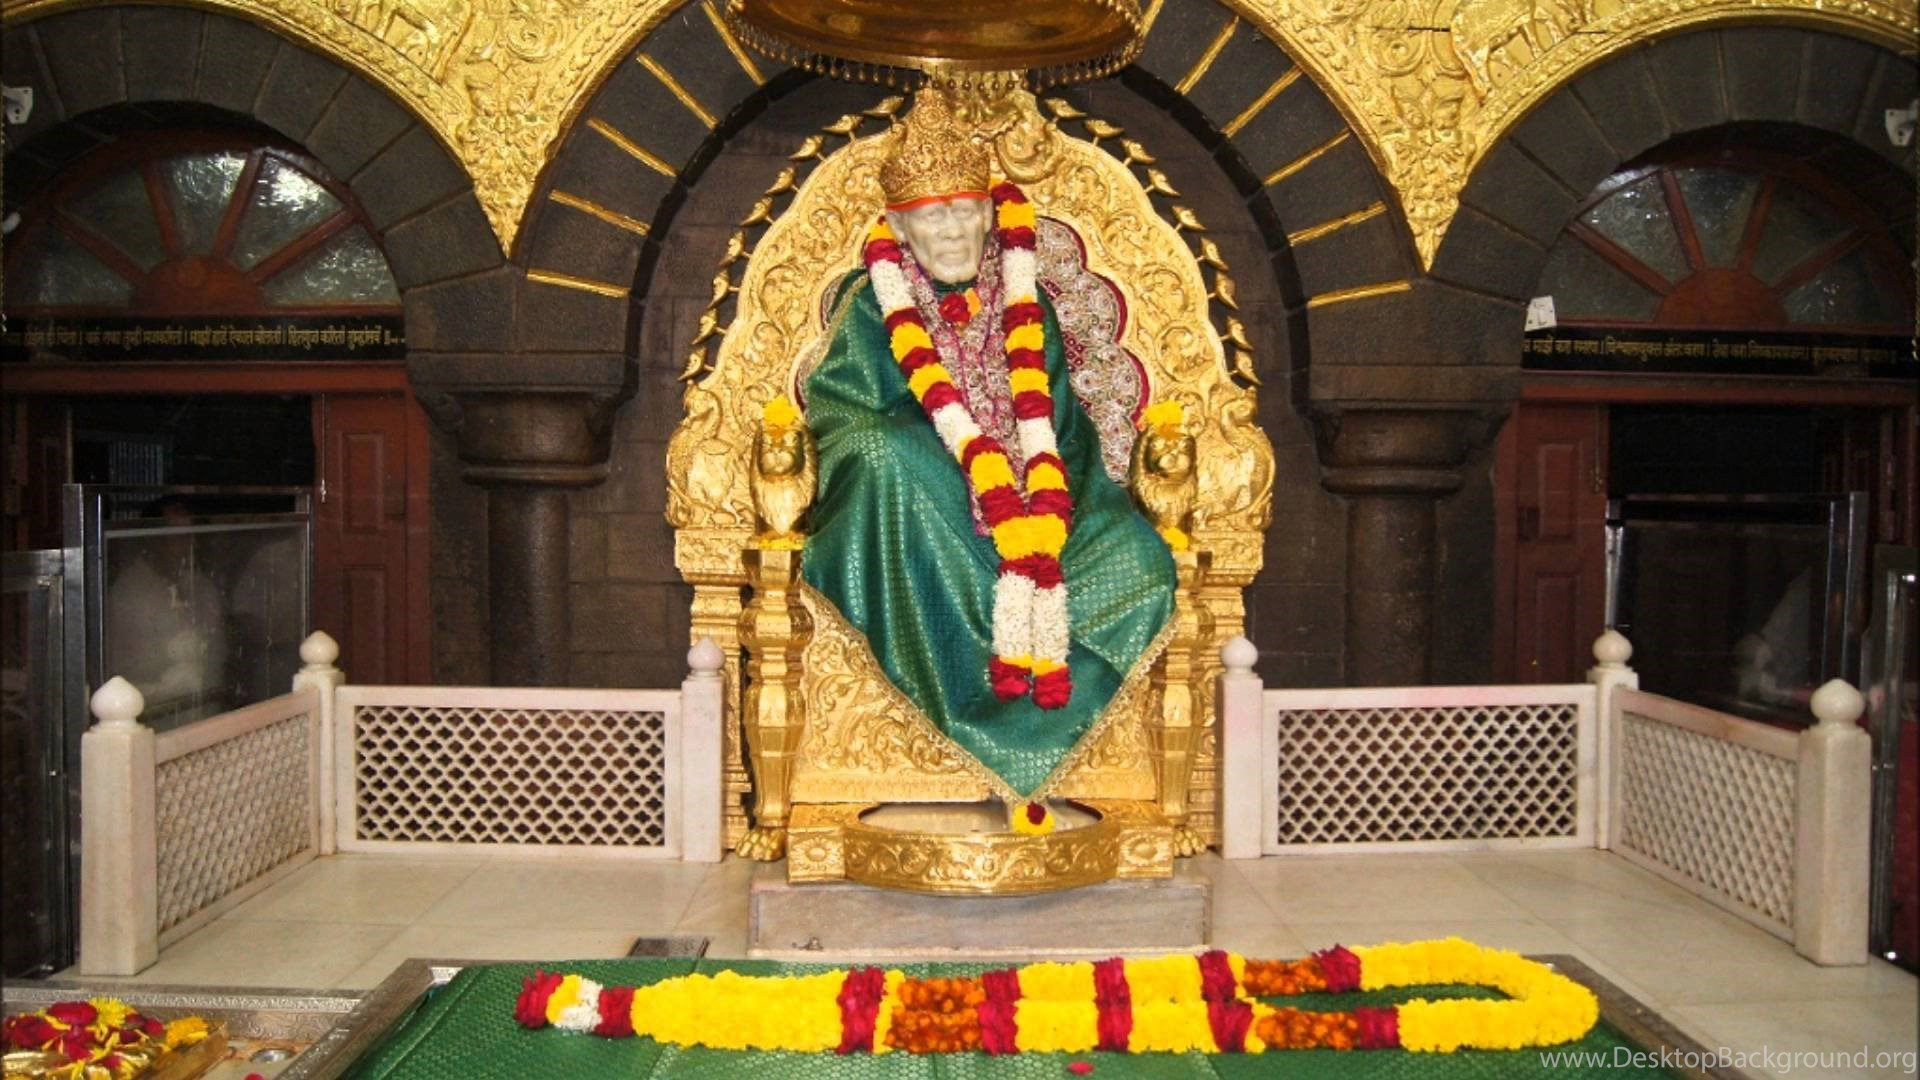 Hd Backgrounds Sai Baba Hindu God Gold Crown Temple Wallpapers